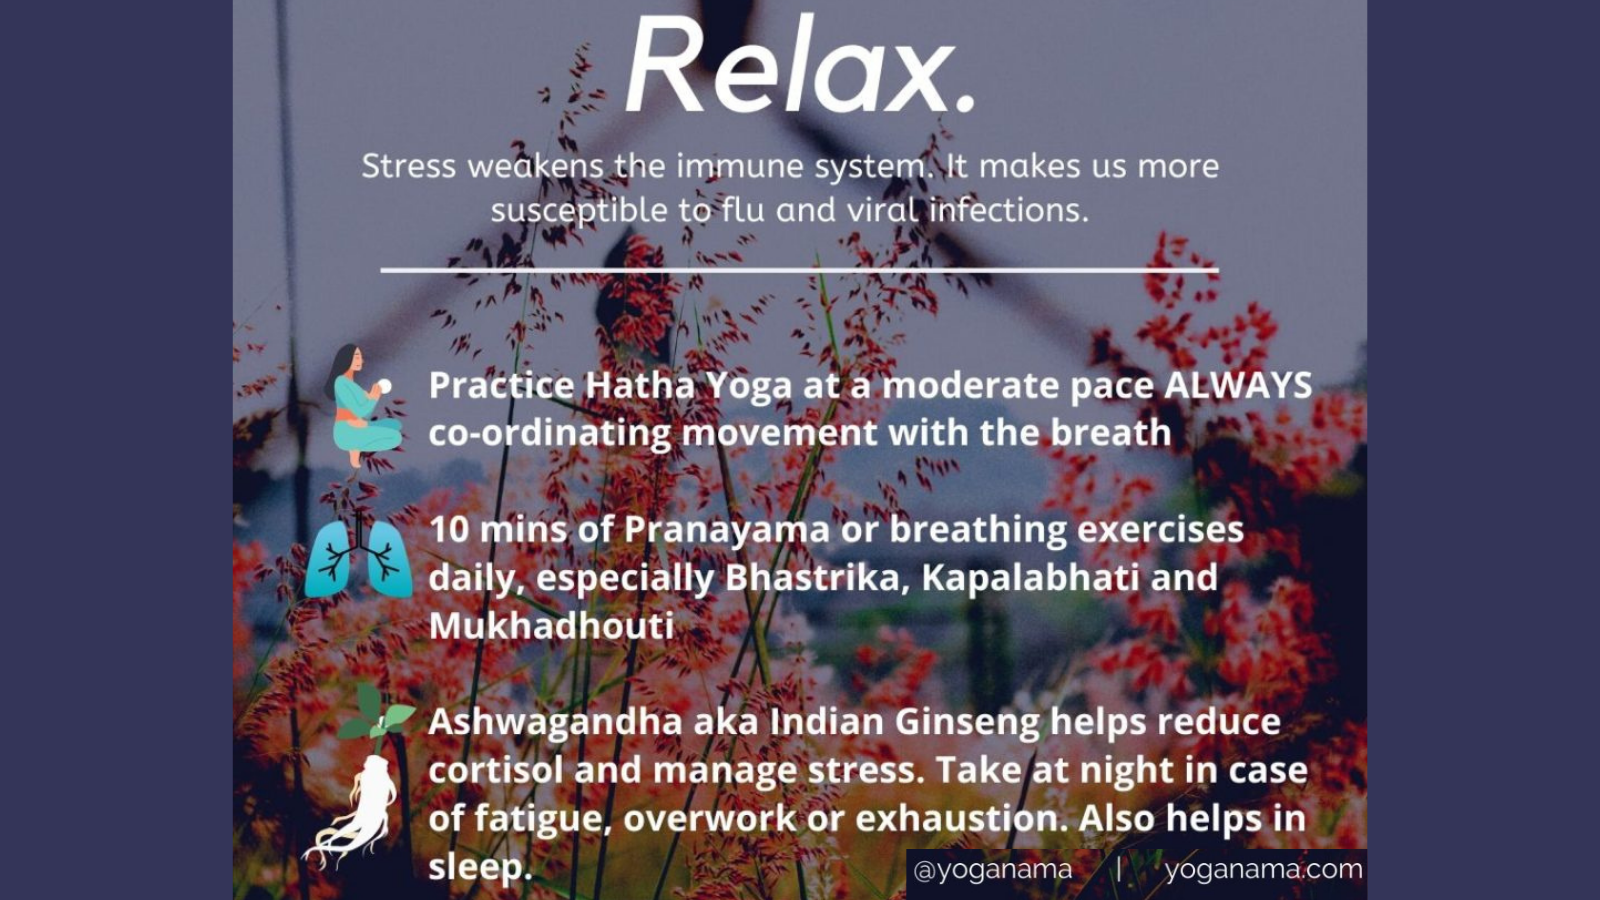 Tips for boosting immunity by minimizing stress and relaxing